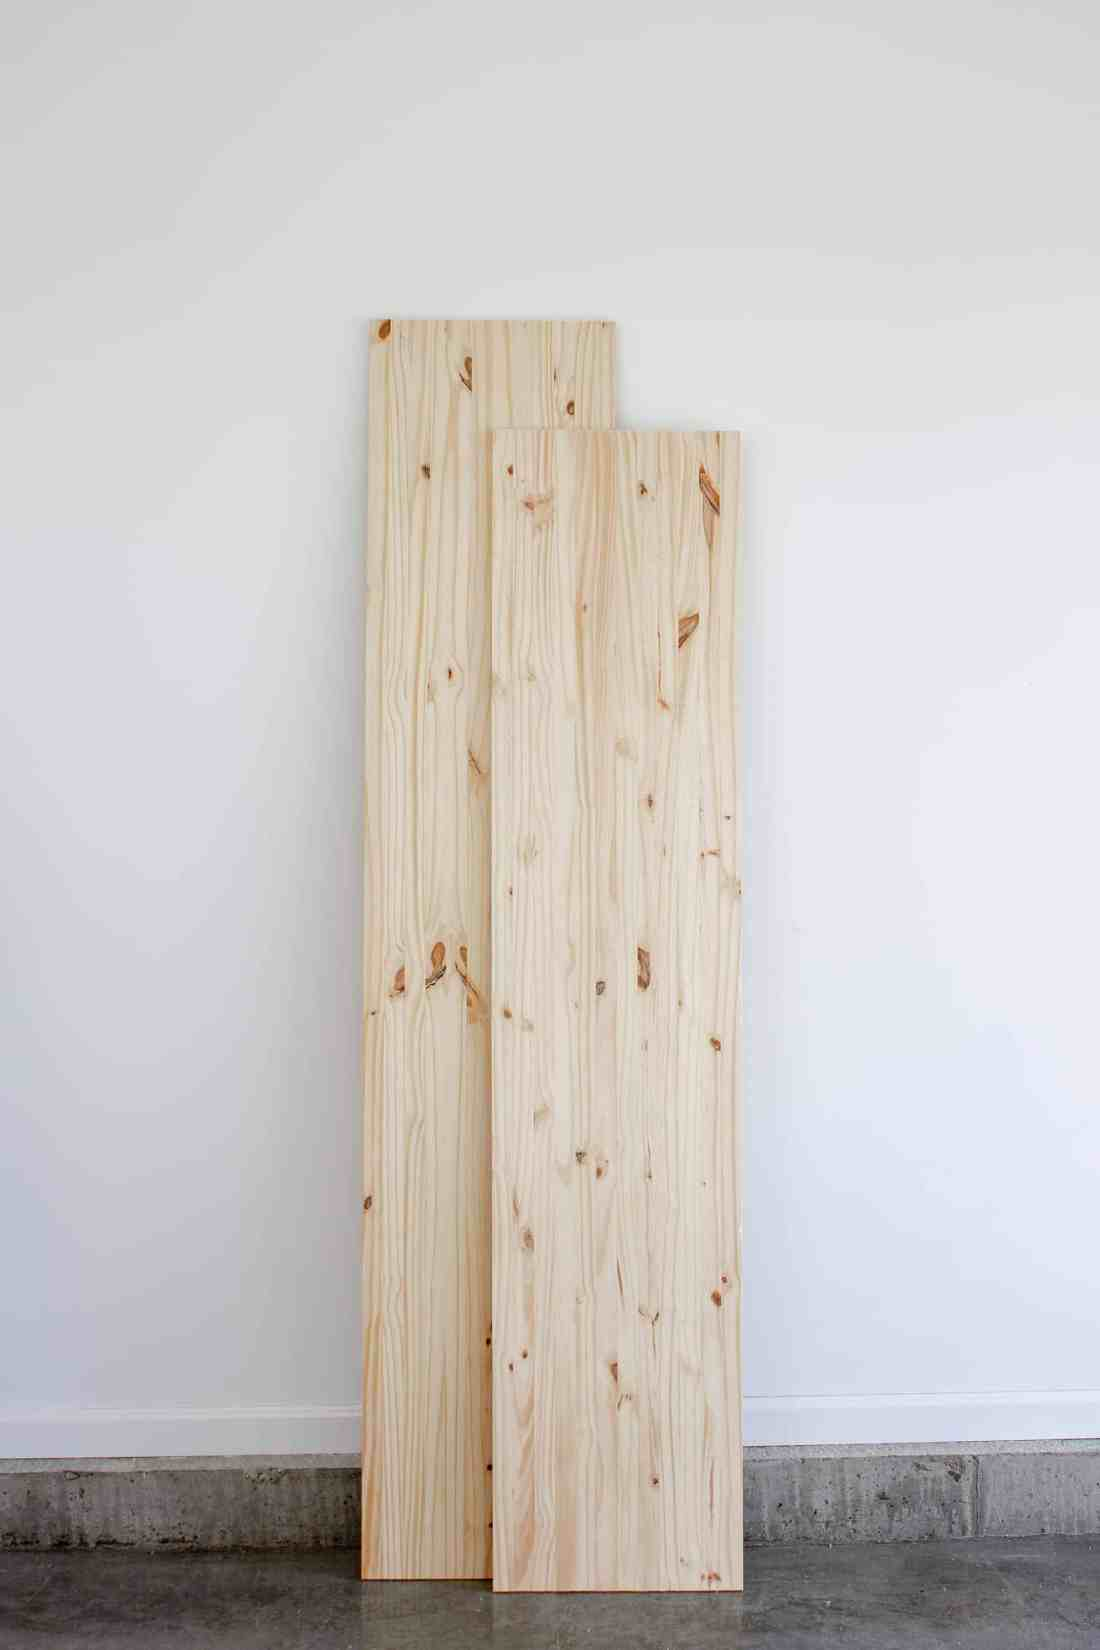 Mastercraft edge-glued pine project panels in 6' and 8' lengths